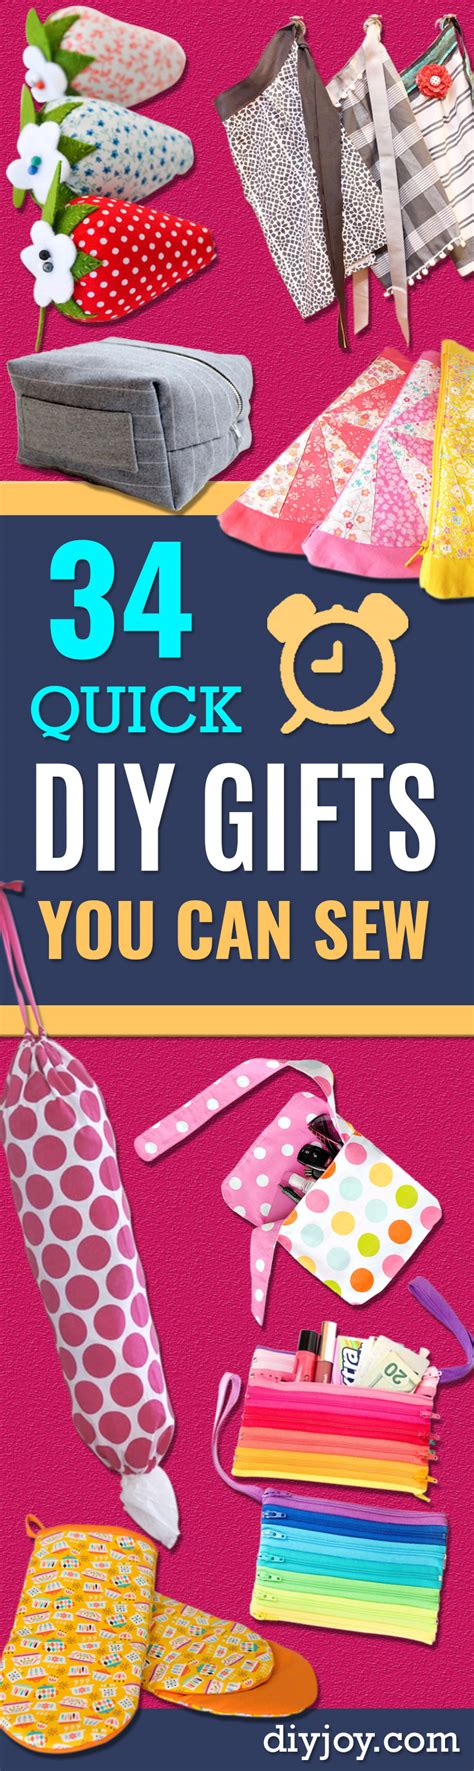 home decorating sewing projects 7 quick and easy no sew 34 quick diy gifts you can sew for friends and family